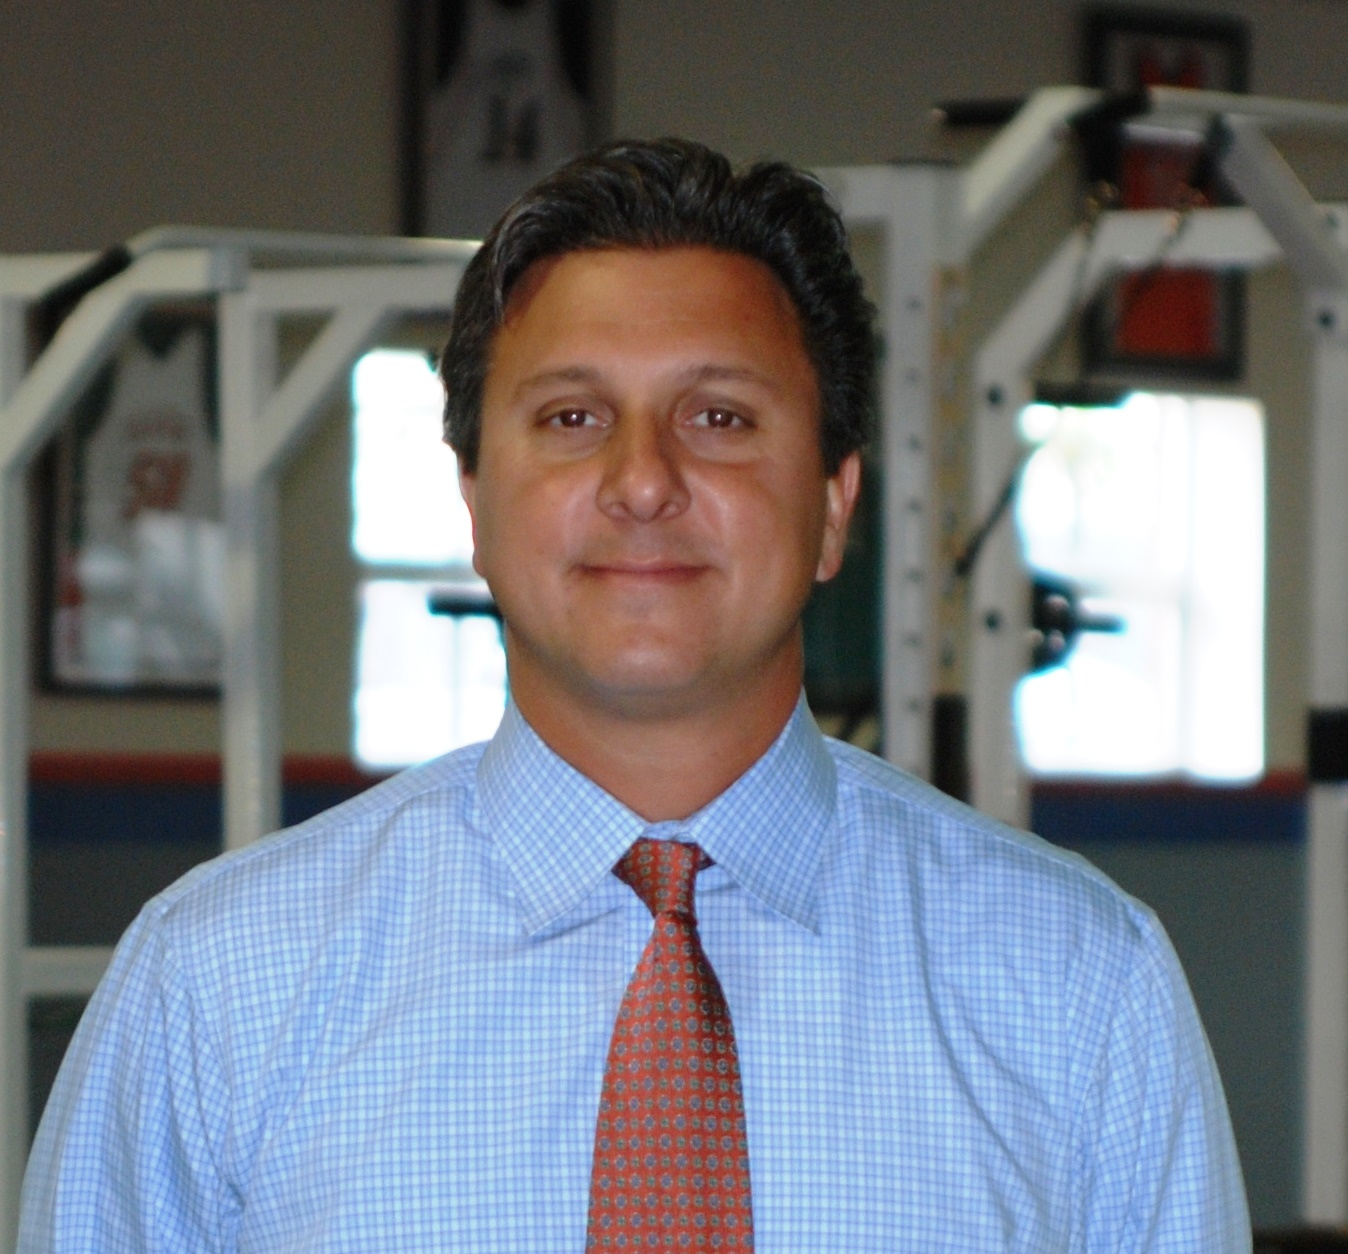 Garden state physical therapy - Tim Mauro Vp Of Clinical Operations At Professional Physical Therapy